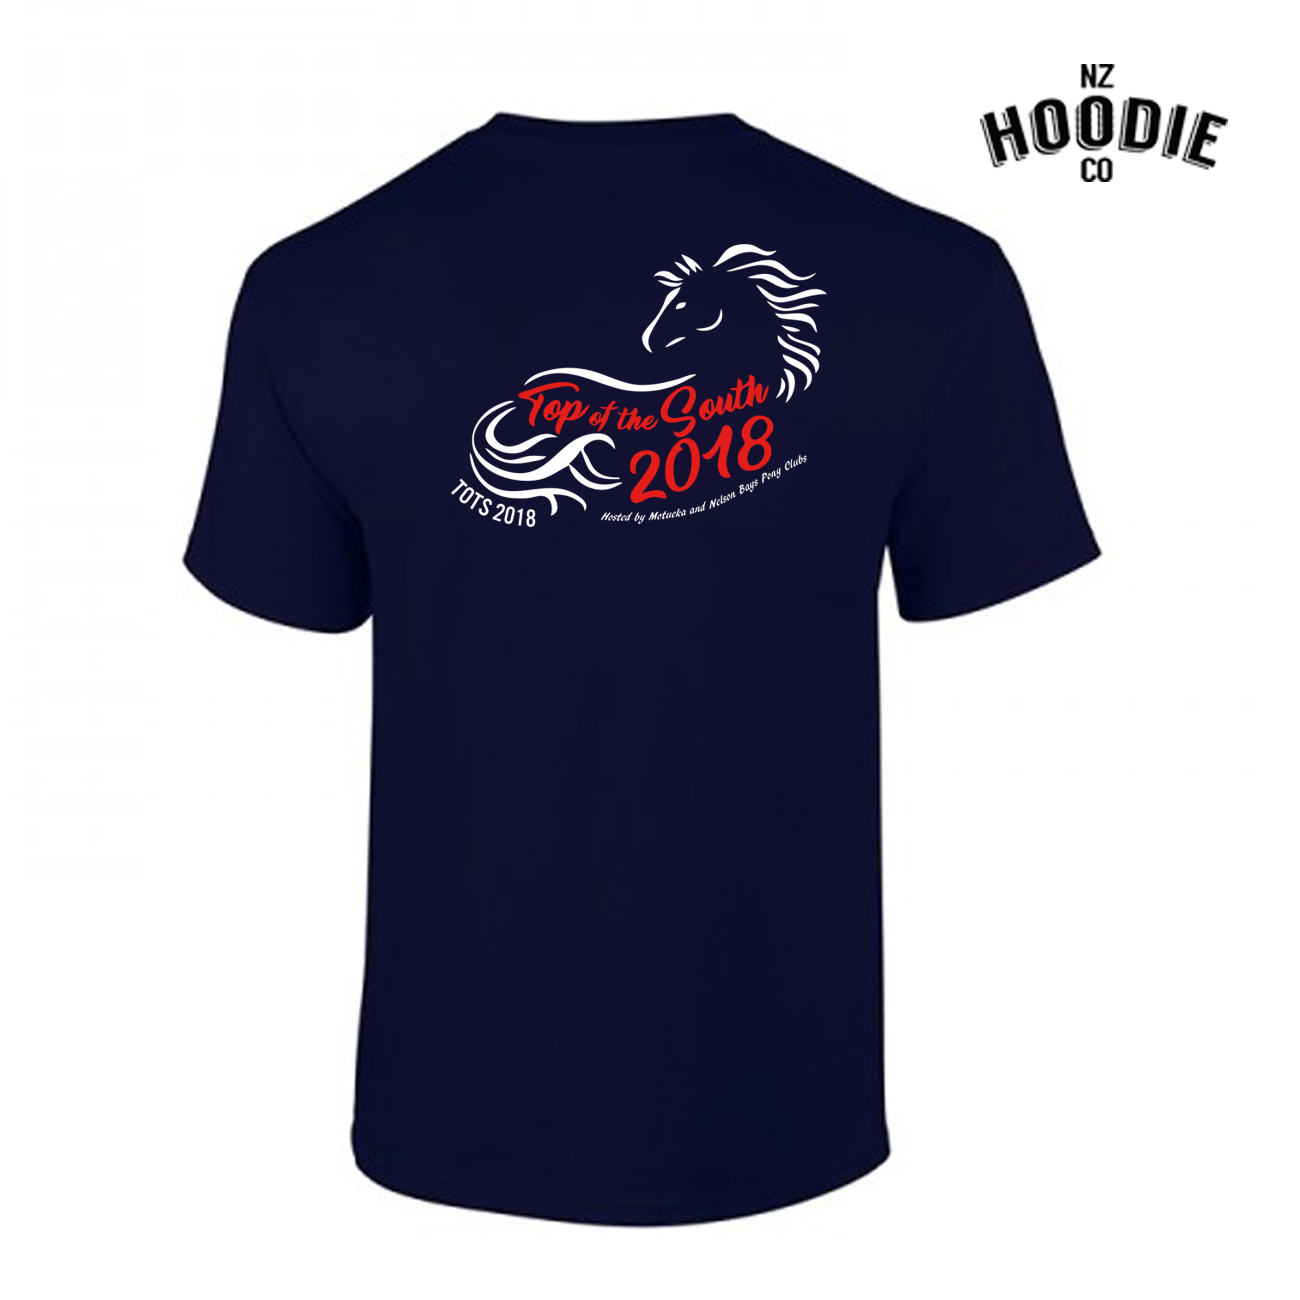 Top of the South Navy Tee BACK two colour.jpg